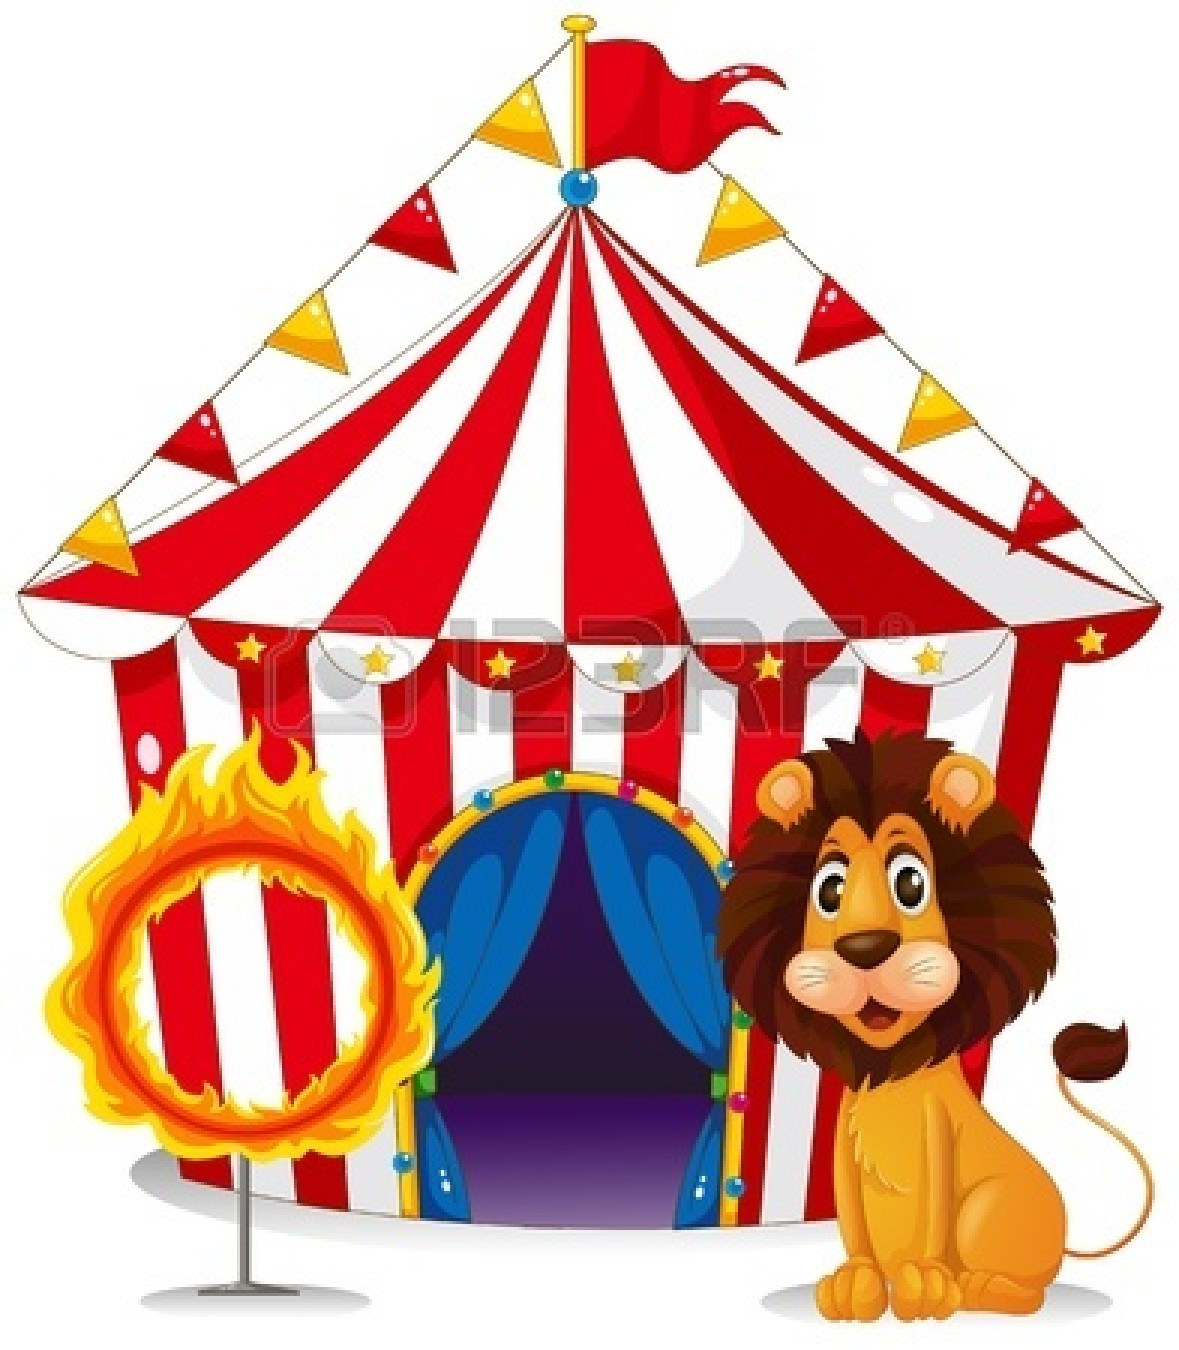 Vintage Circus Animal Clipart | Clipart Panda - Free Clipart Images